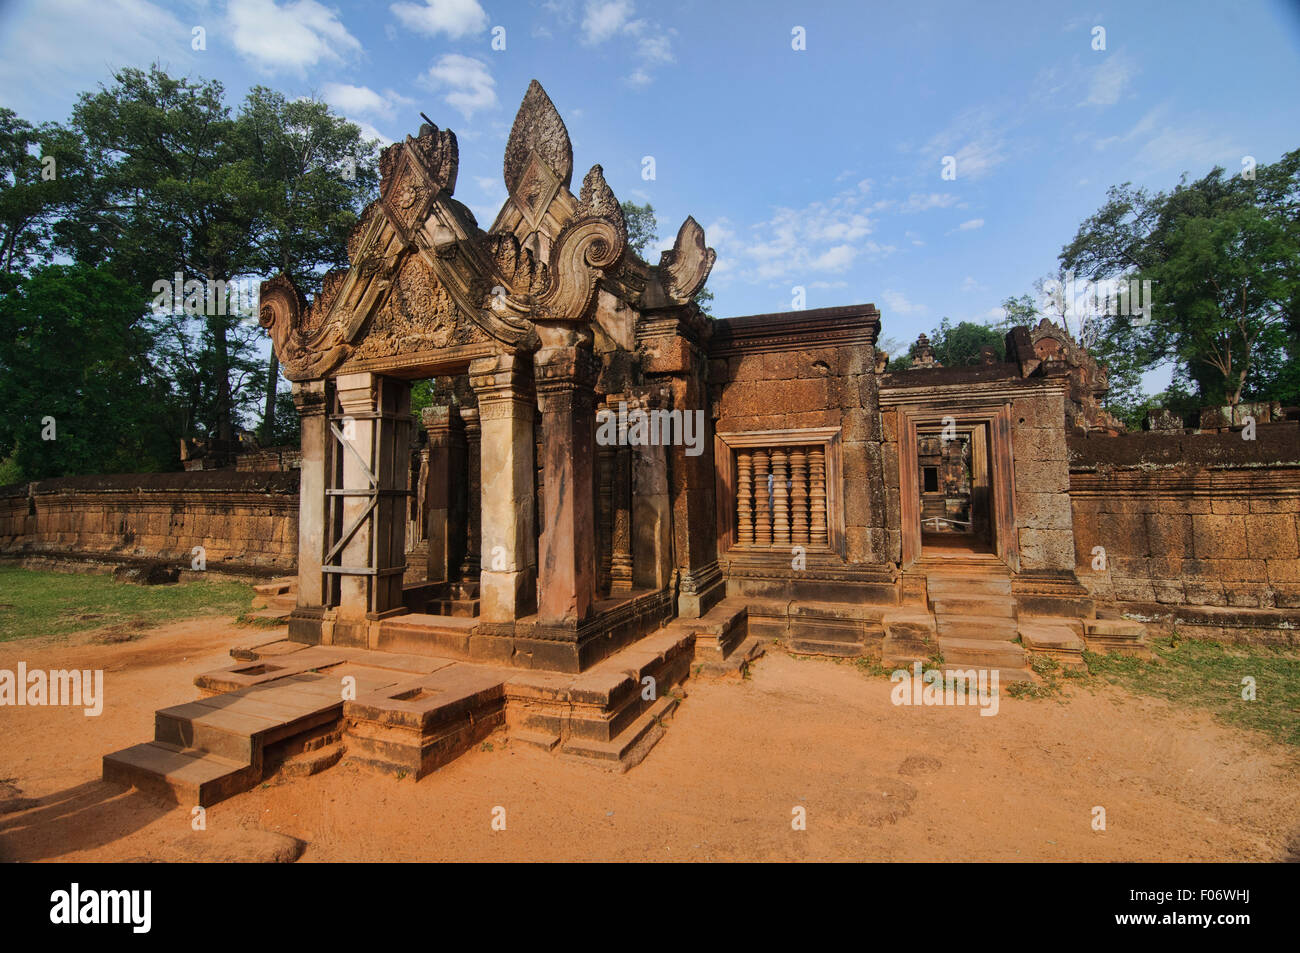 Entrance at Banteay Srei temple, Angkor Wat in Siem Reap, Cambodia - Stock Image